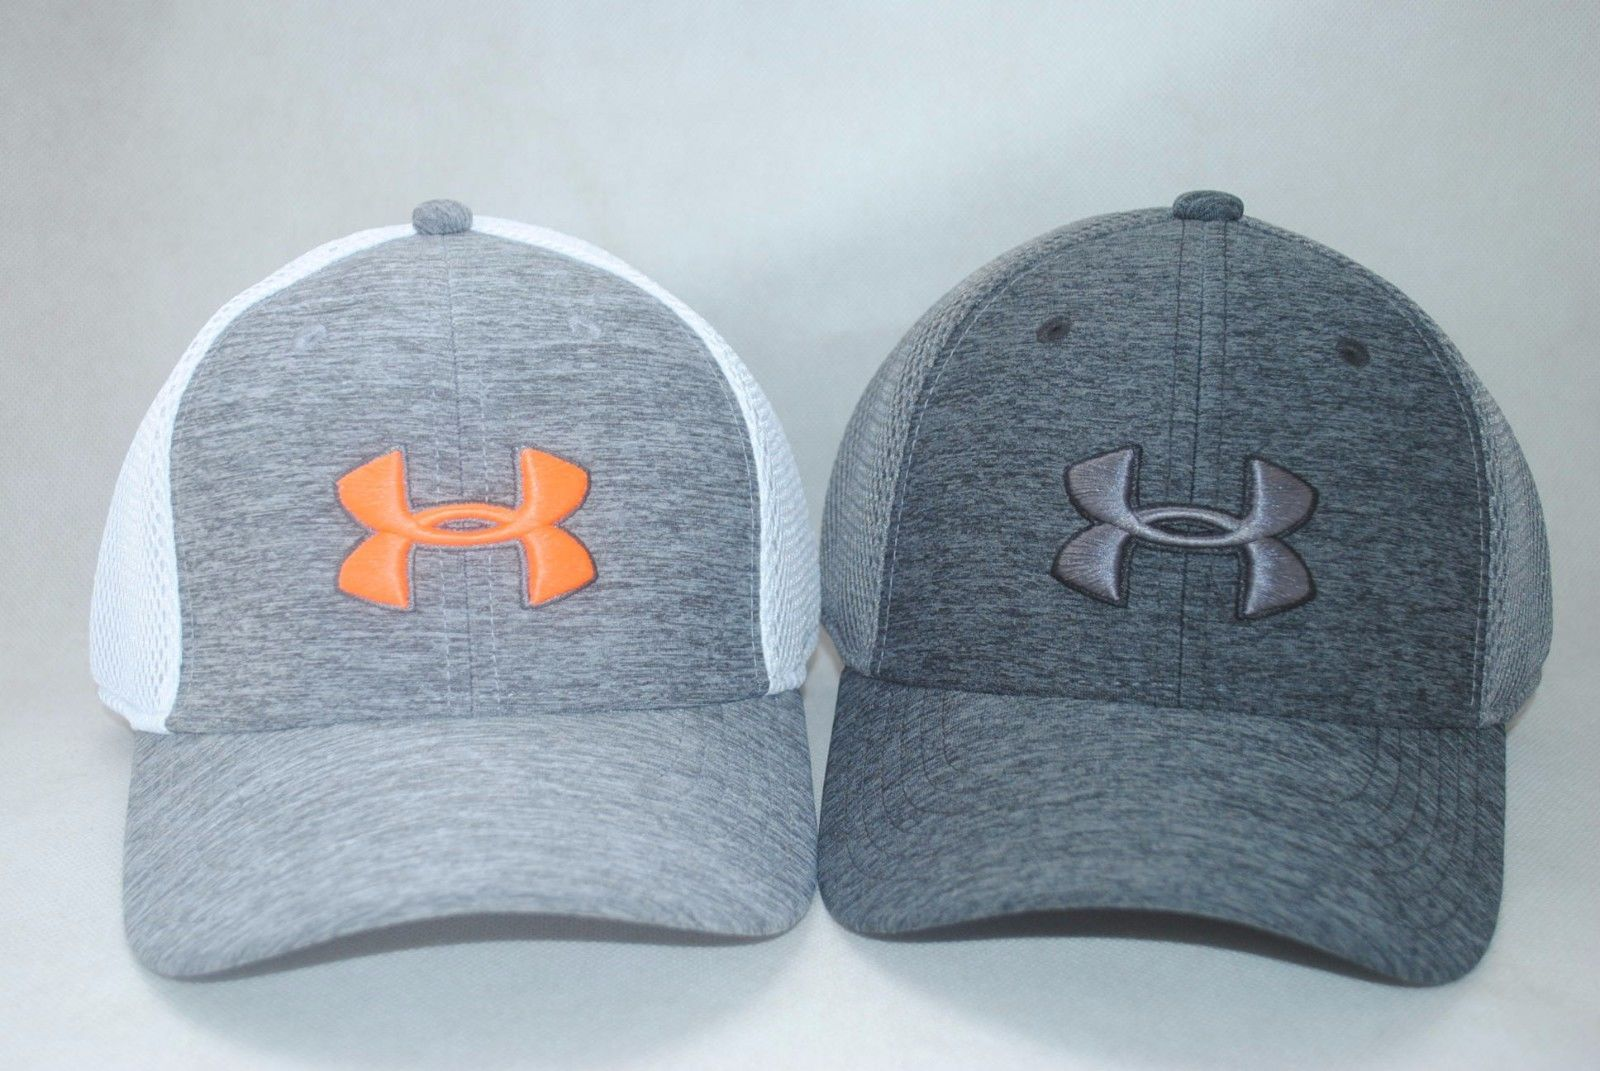 Hats 57884  New Under Armour Youth Boys Ua Classic Mesh Golf Cap Stretch Fit  Hat -  BUY IT NOW ONLY   17.09 on  eBay  under  armour  youth  classic   stretch 5c78bf6caf7